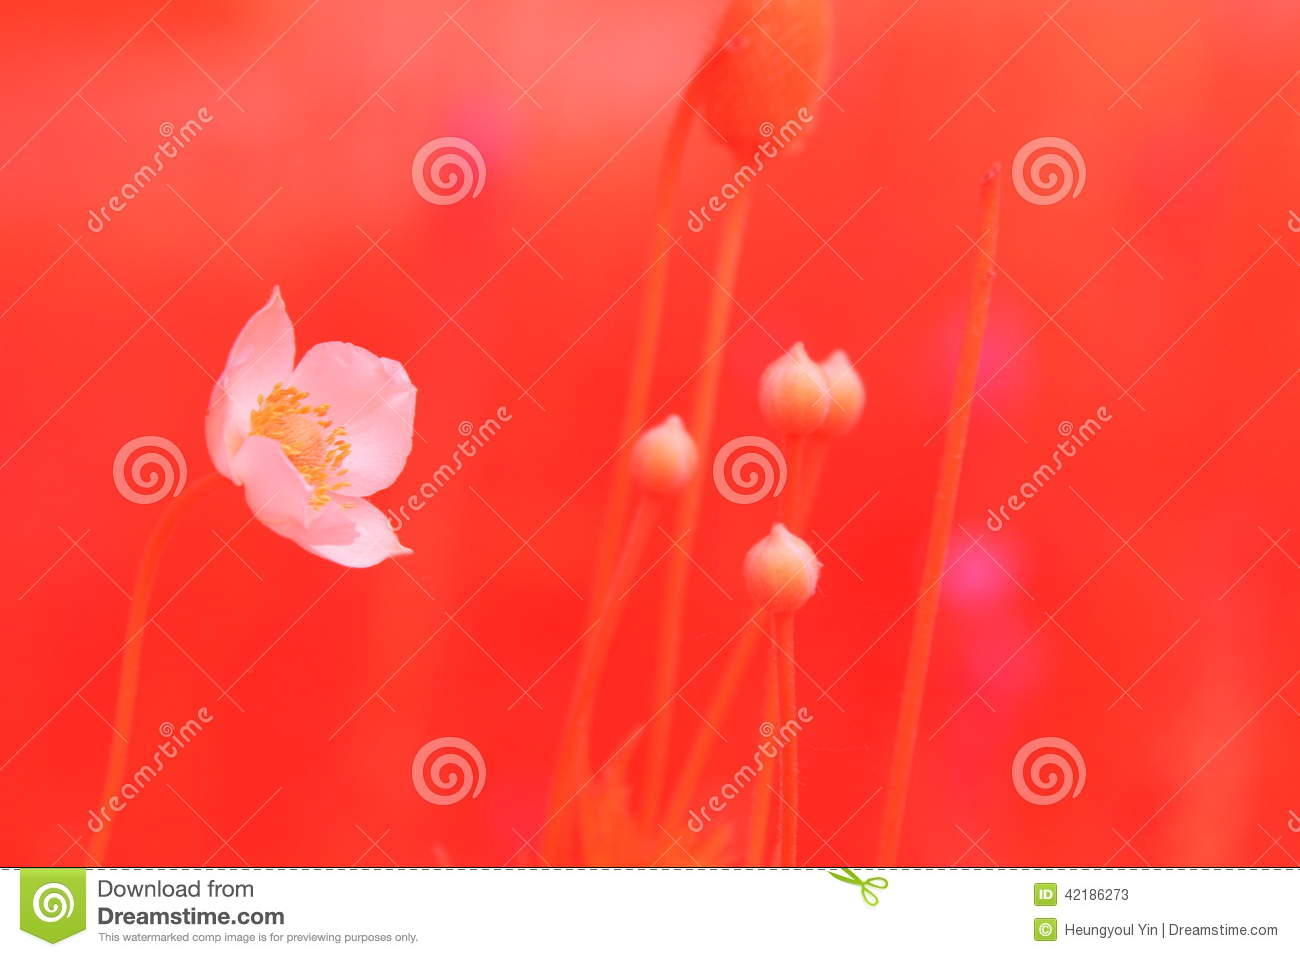 Dreaming flowers stock photo image 42186273 - Dreaming about the color red ...